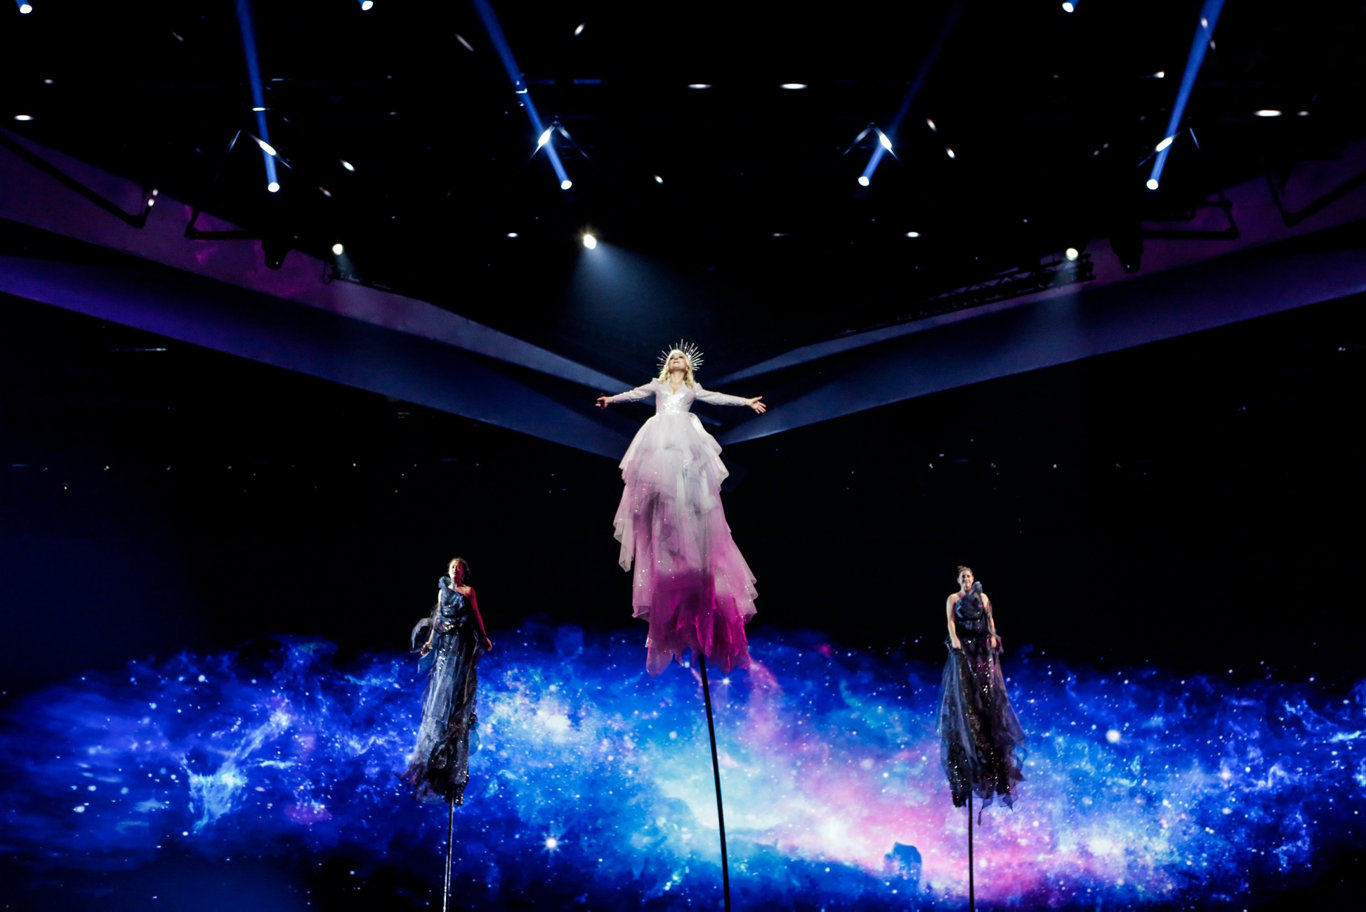 Australia's Kate Miller-Heidke rises up in her first rehearsal for Eurovision 2019, Tel Aviv, Israel. Supplied by Eurovision.tv.